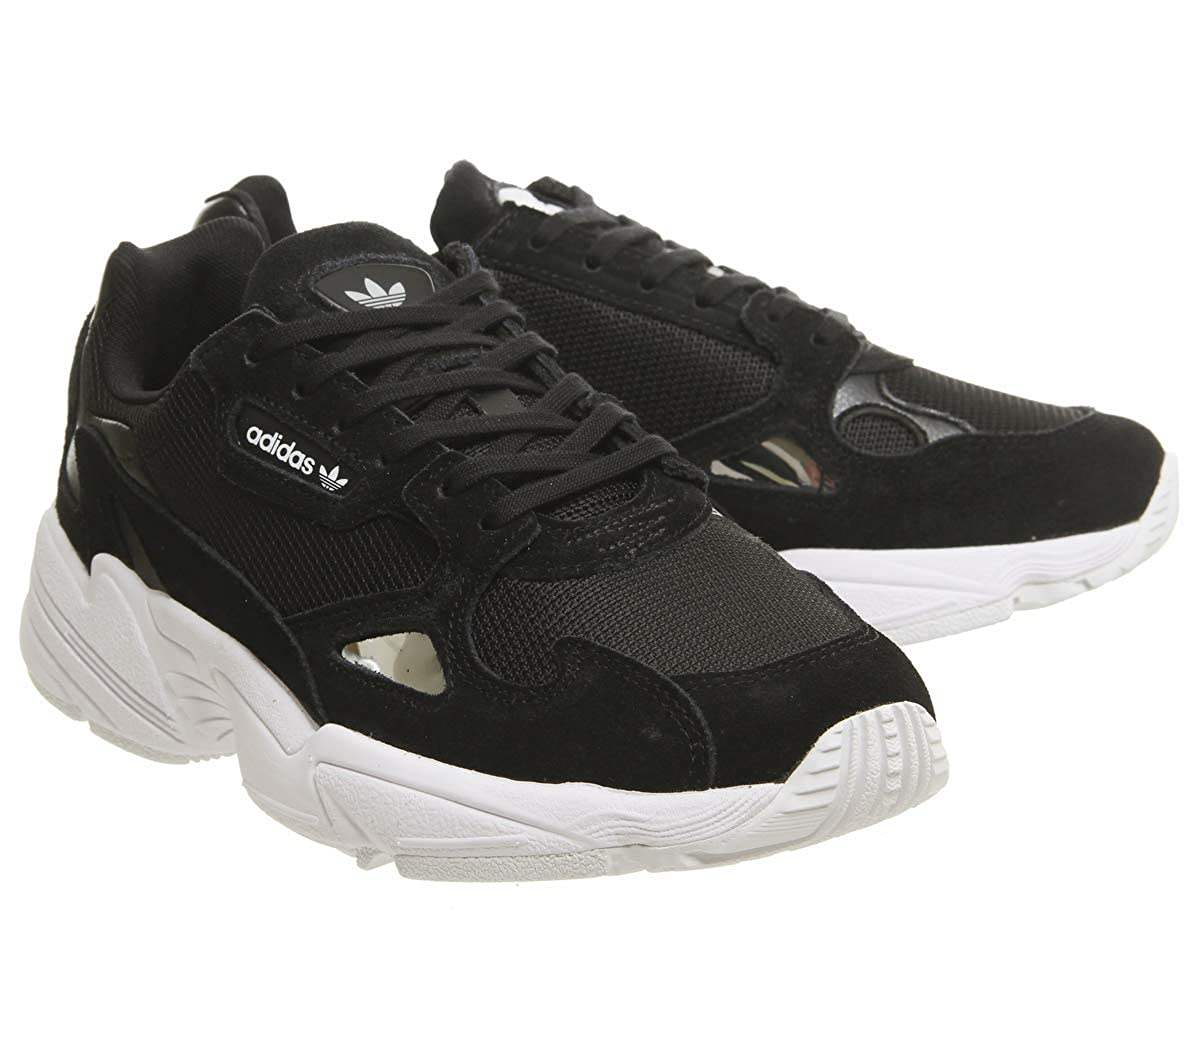 adidas falcon w chaussures de fitness femme